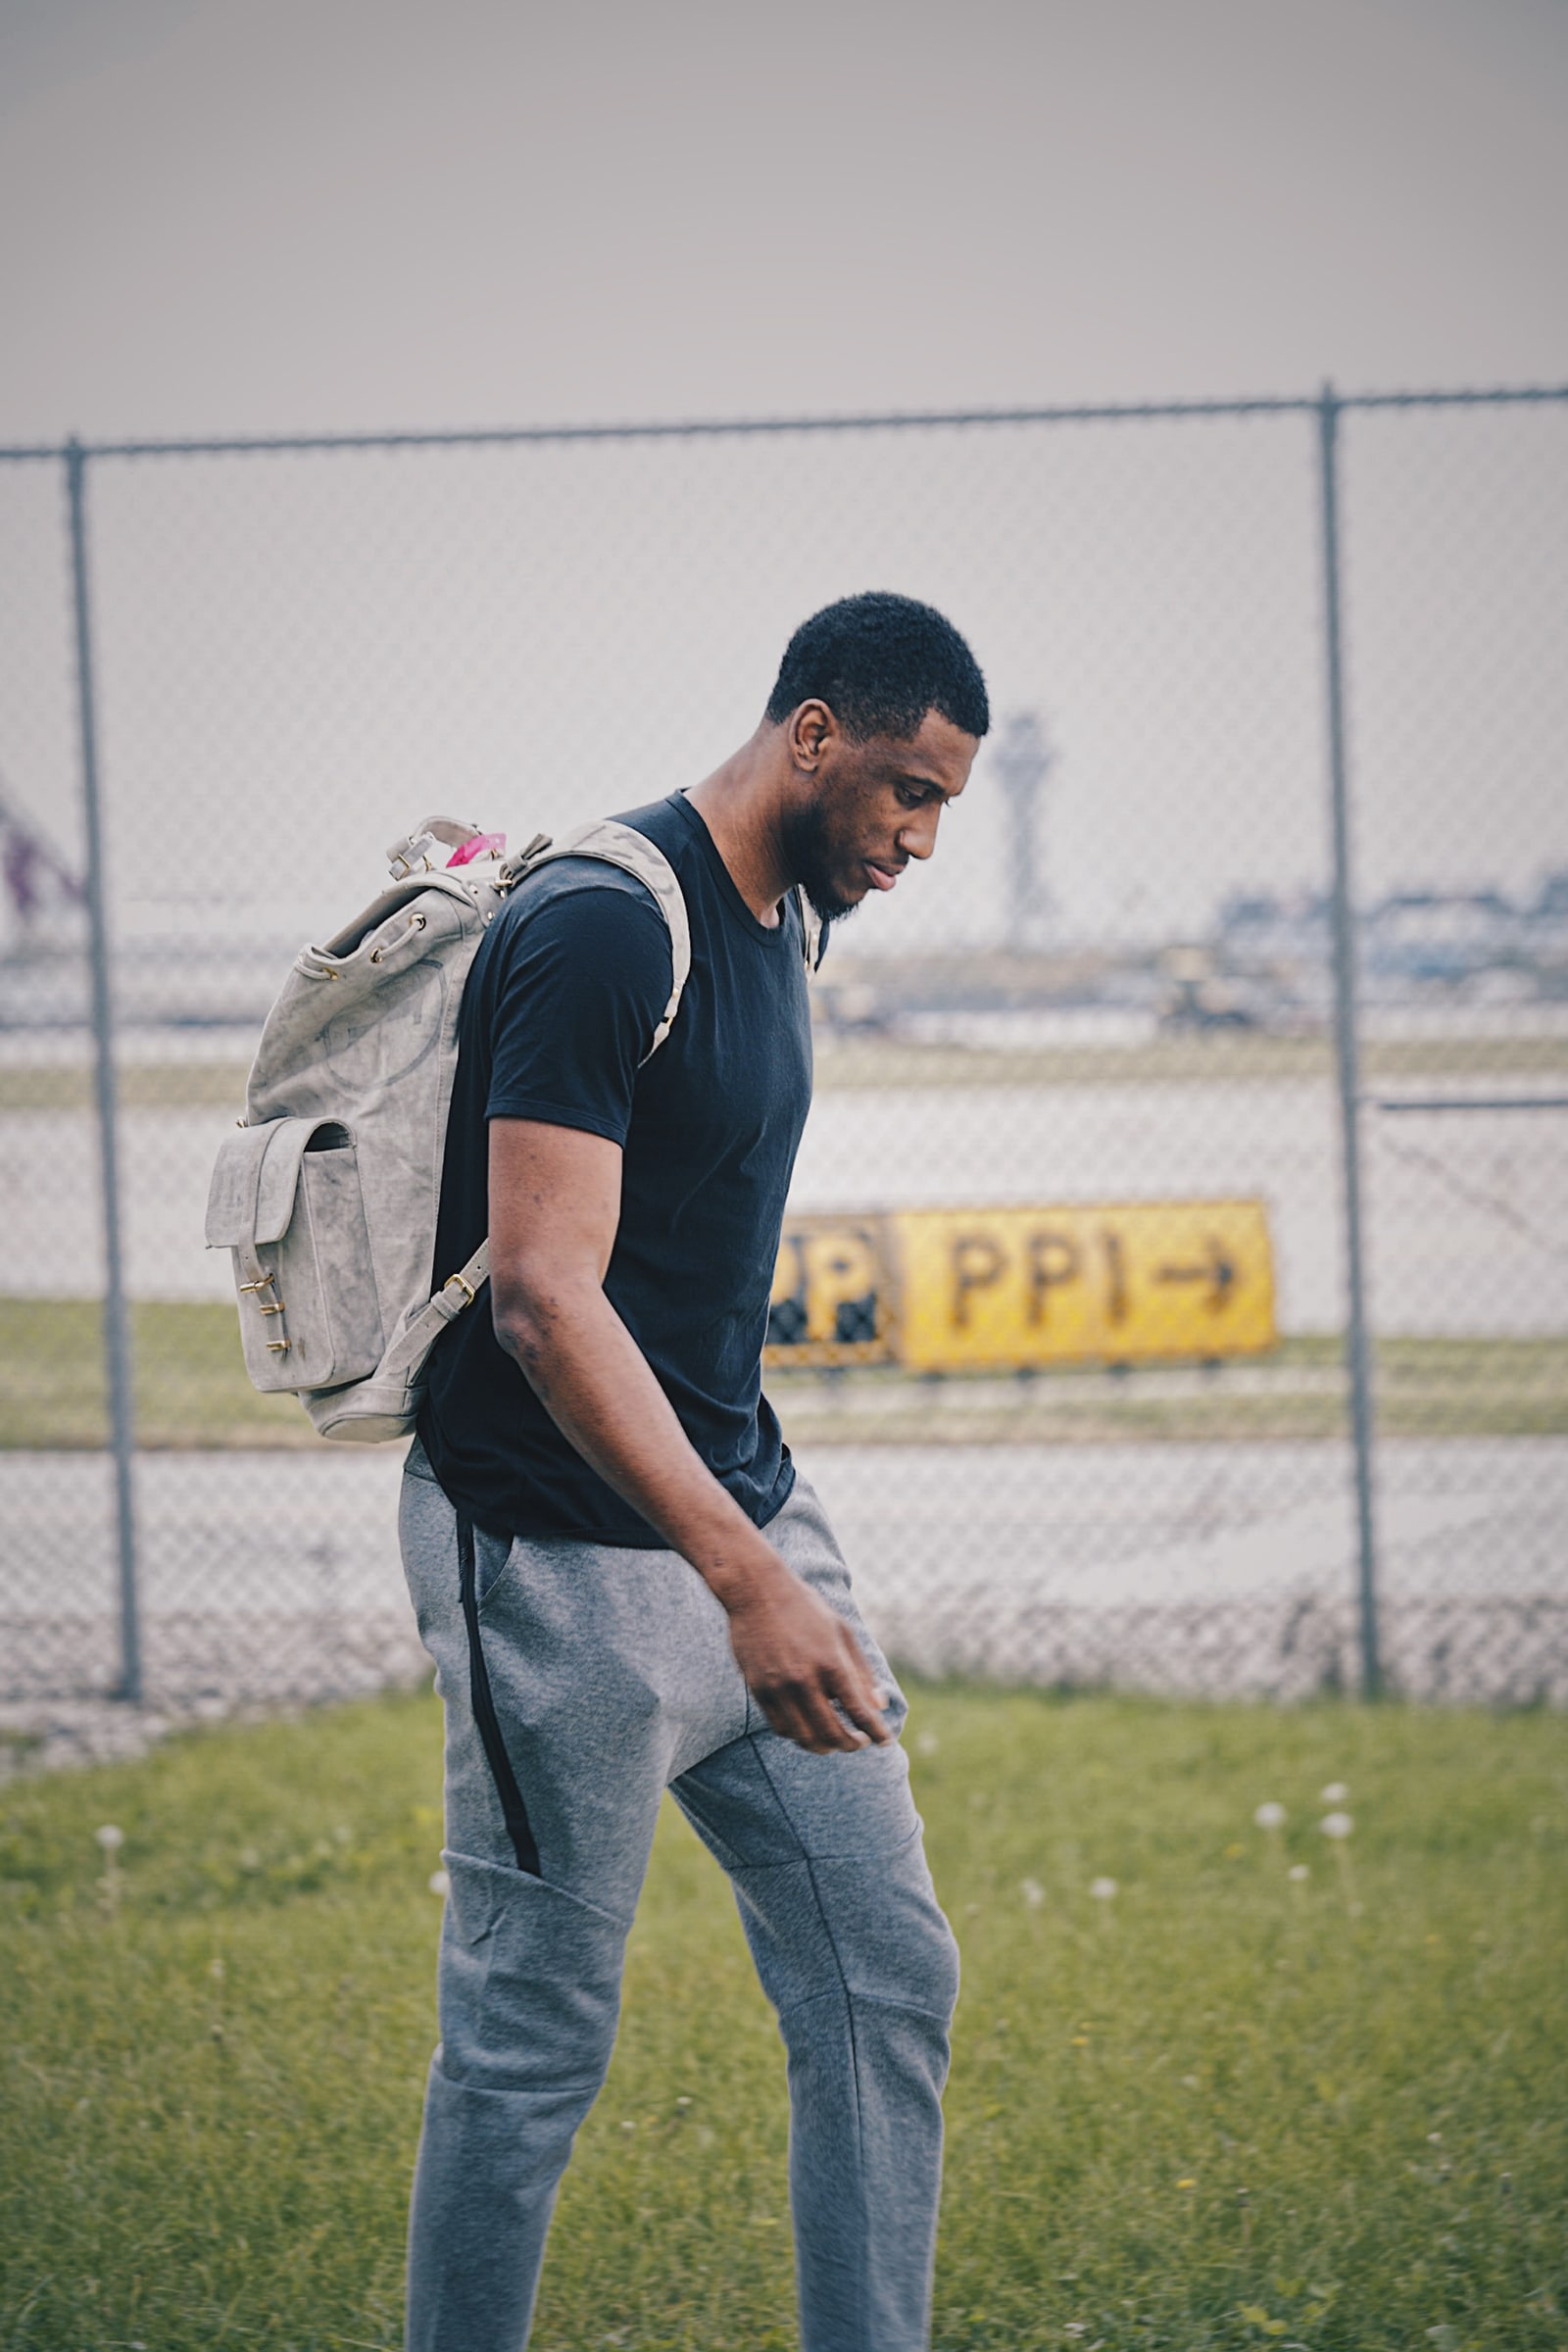 Thad boarding a plane to Indiana